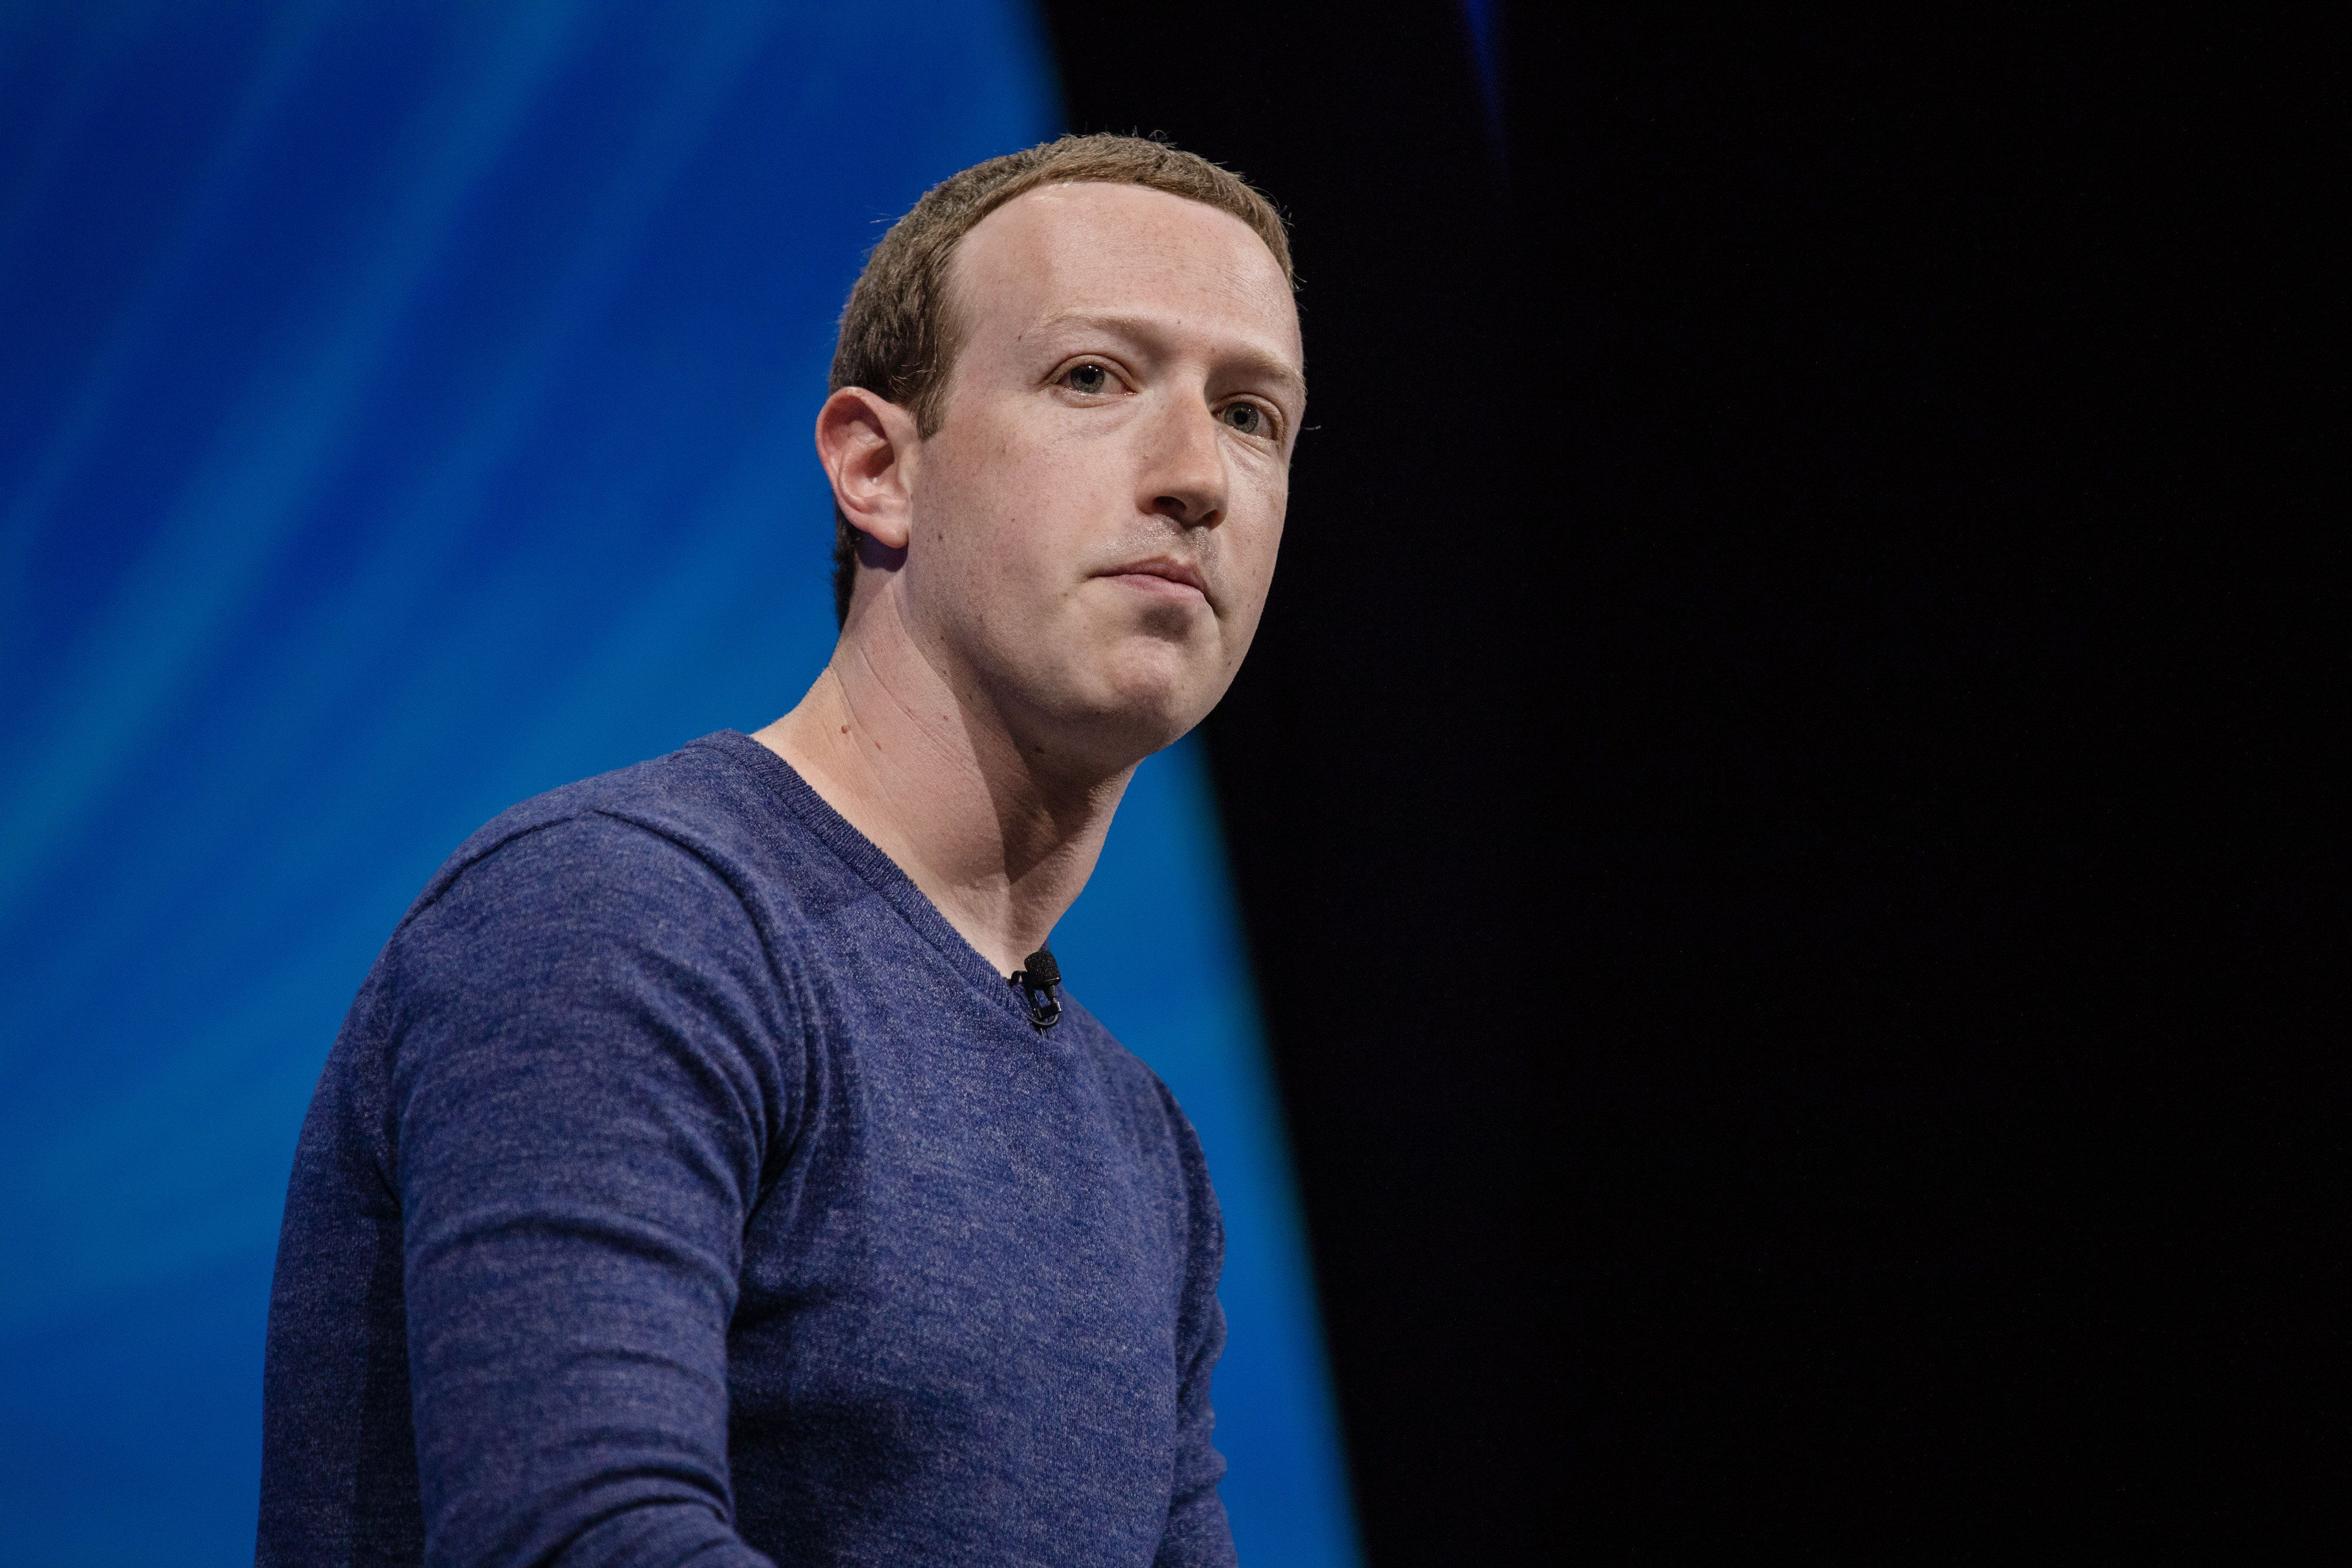 Holocaust experts have demanded a meeting with Facebook founder Mark